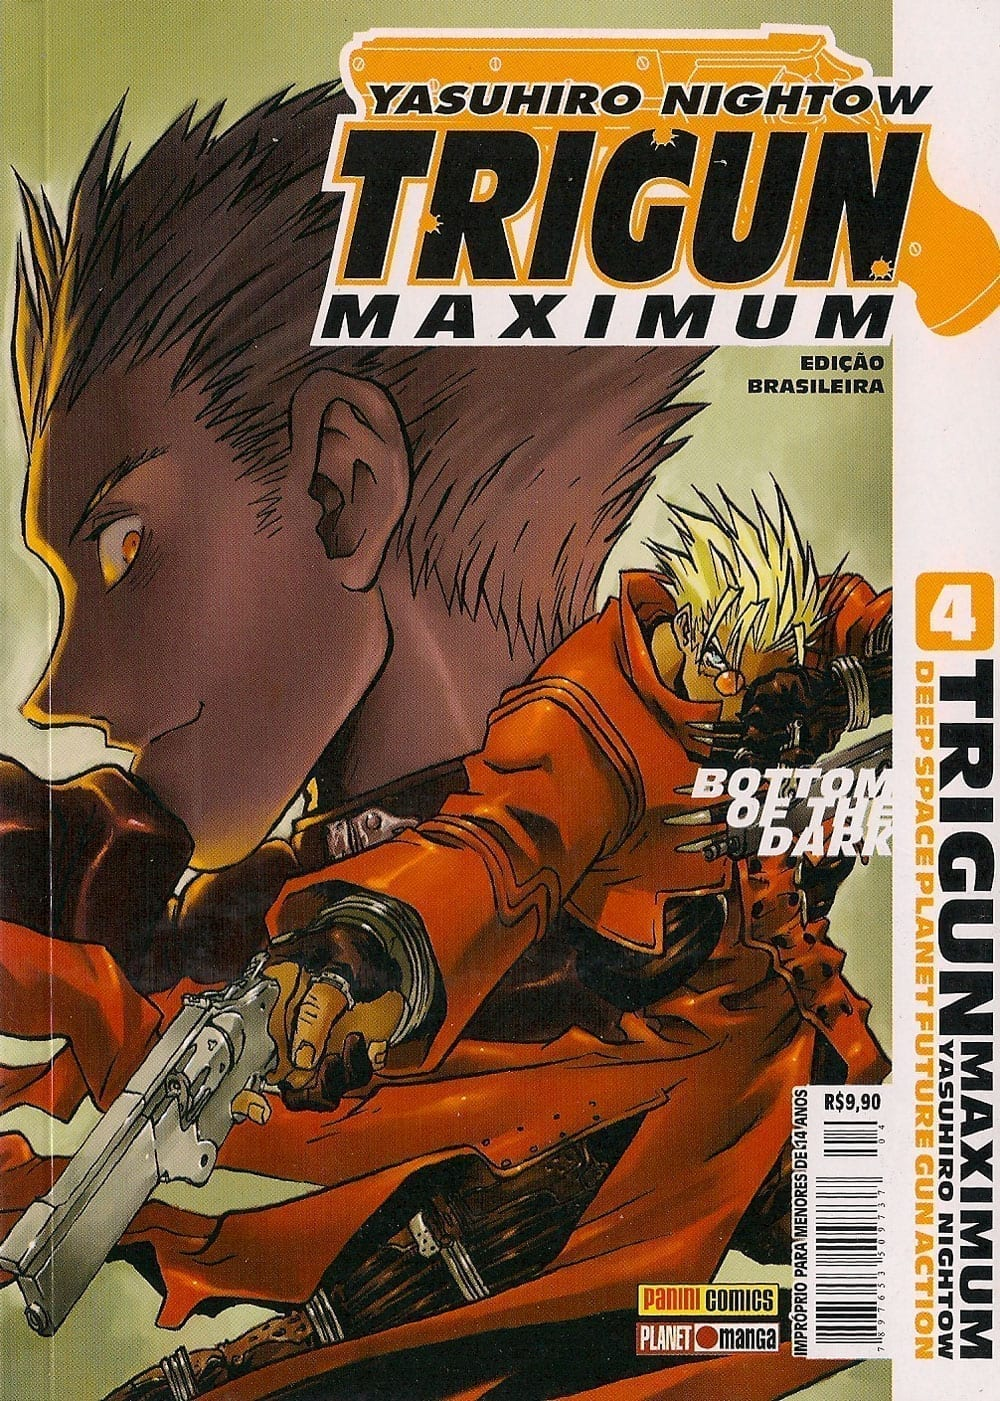 Capa: Trigun Maximum 4